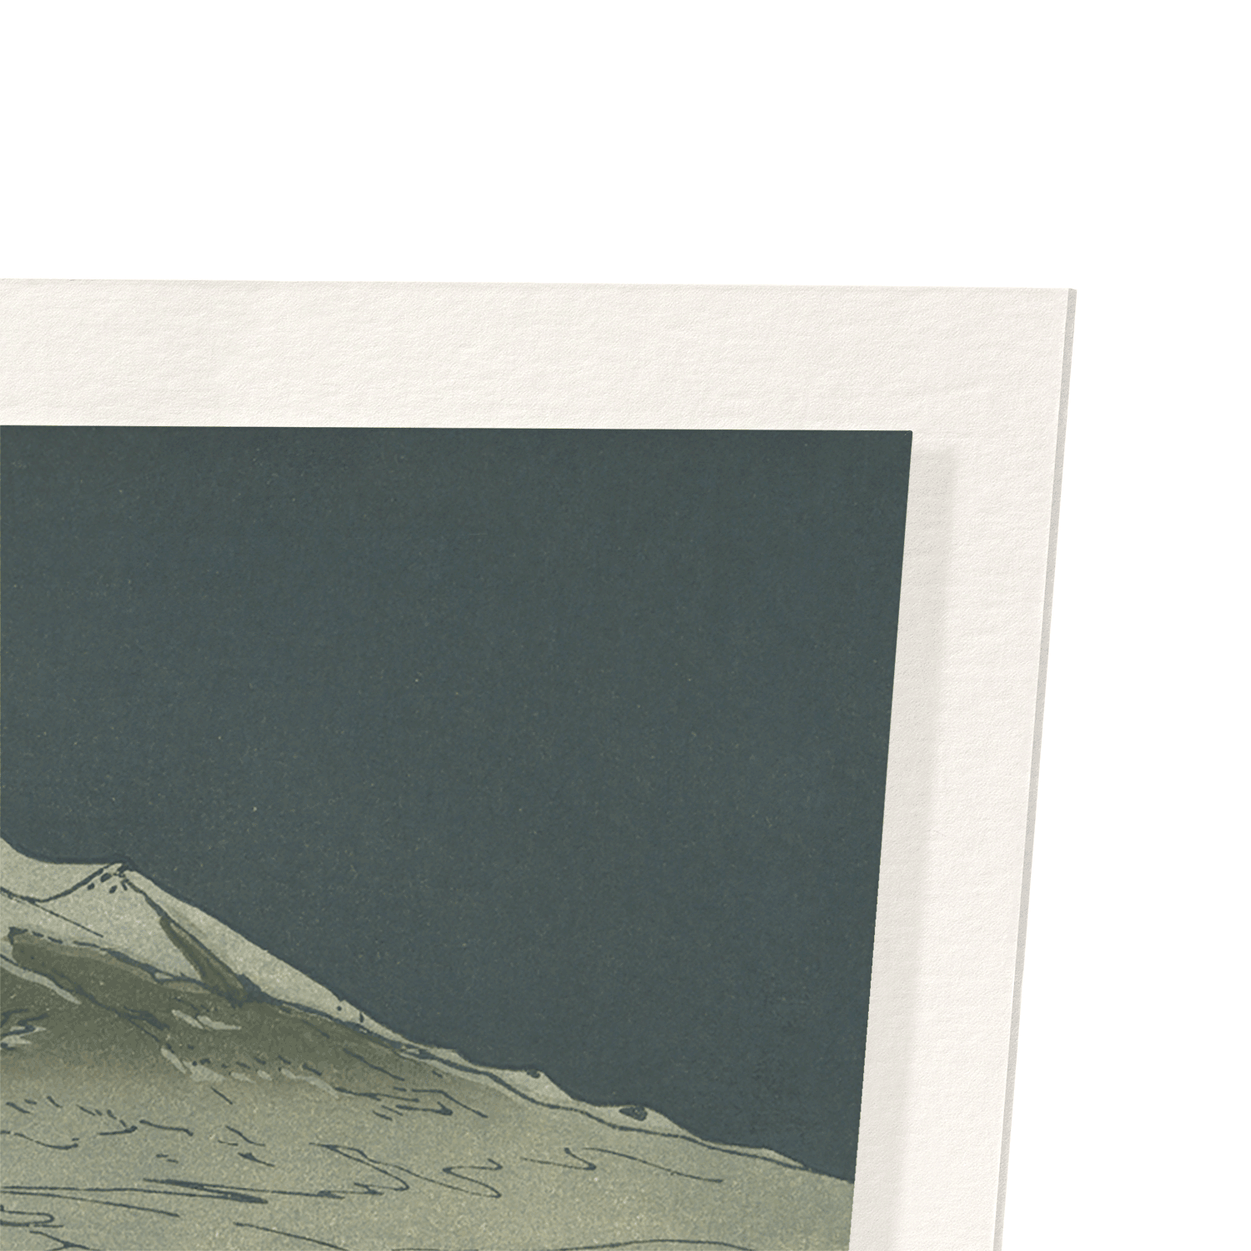 Mount fuji at nihondaira: 2xPrints